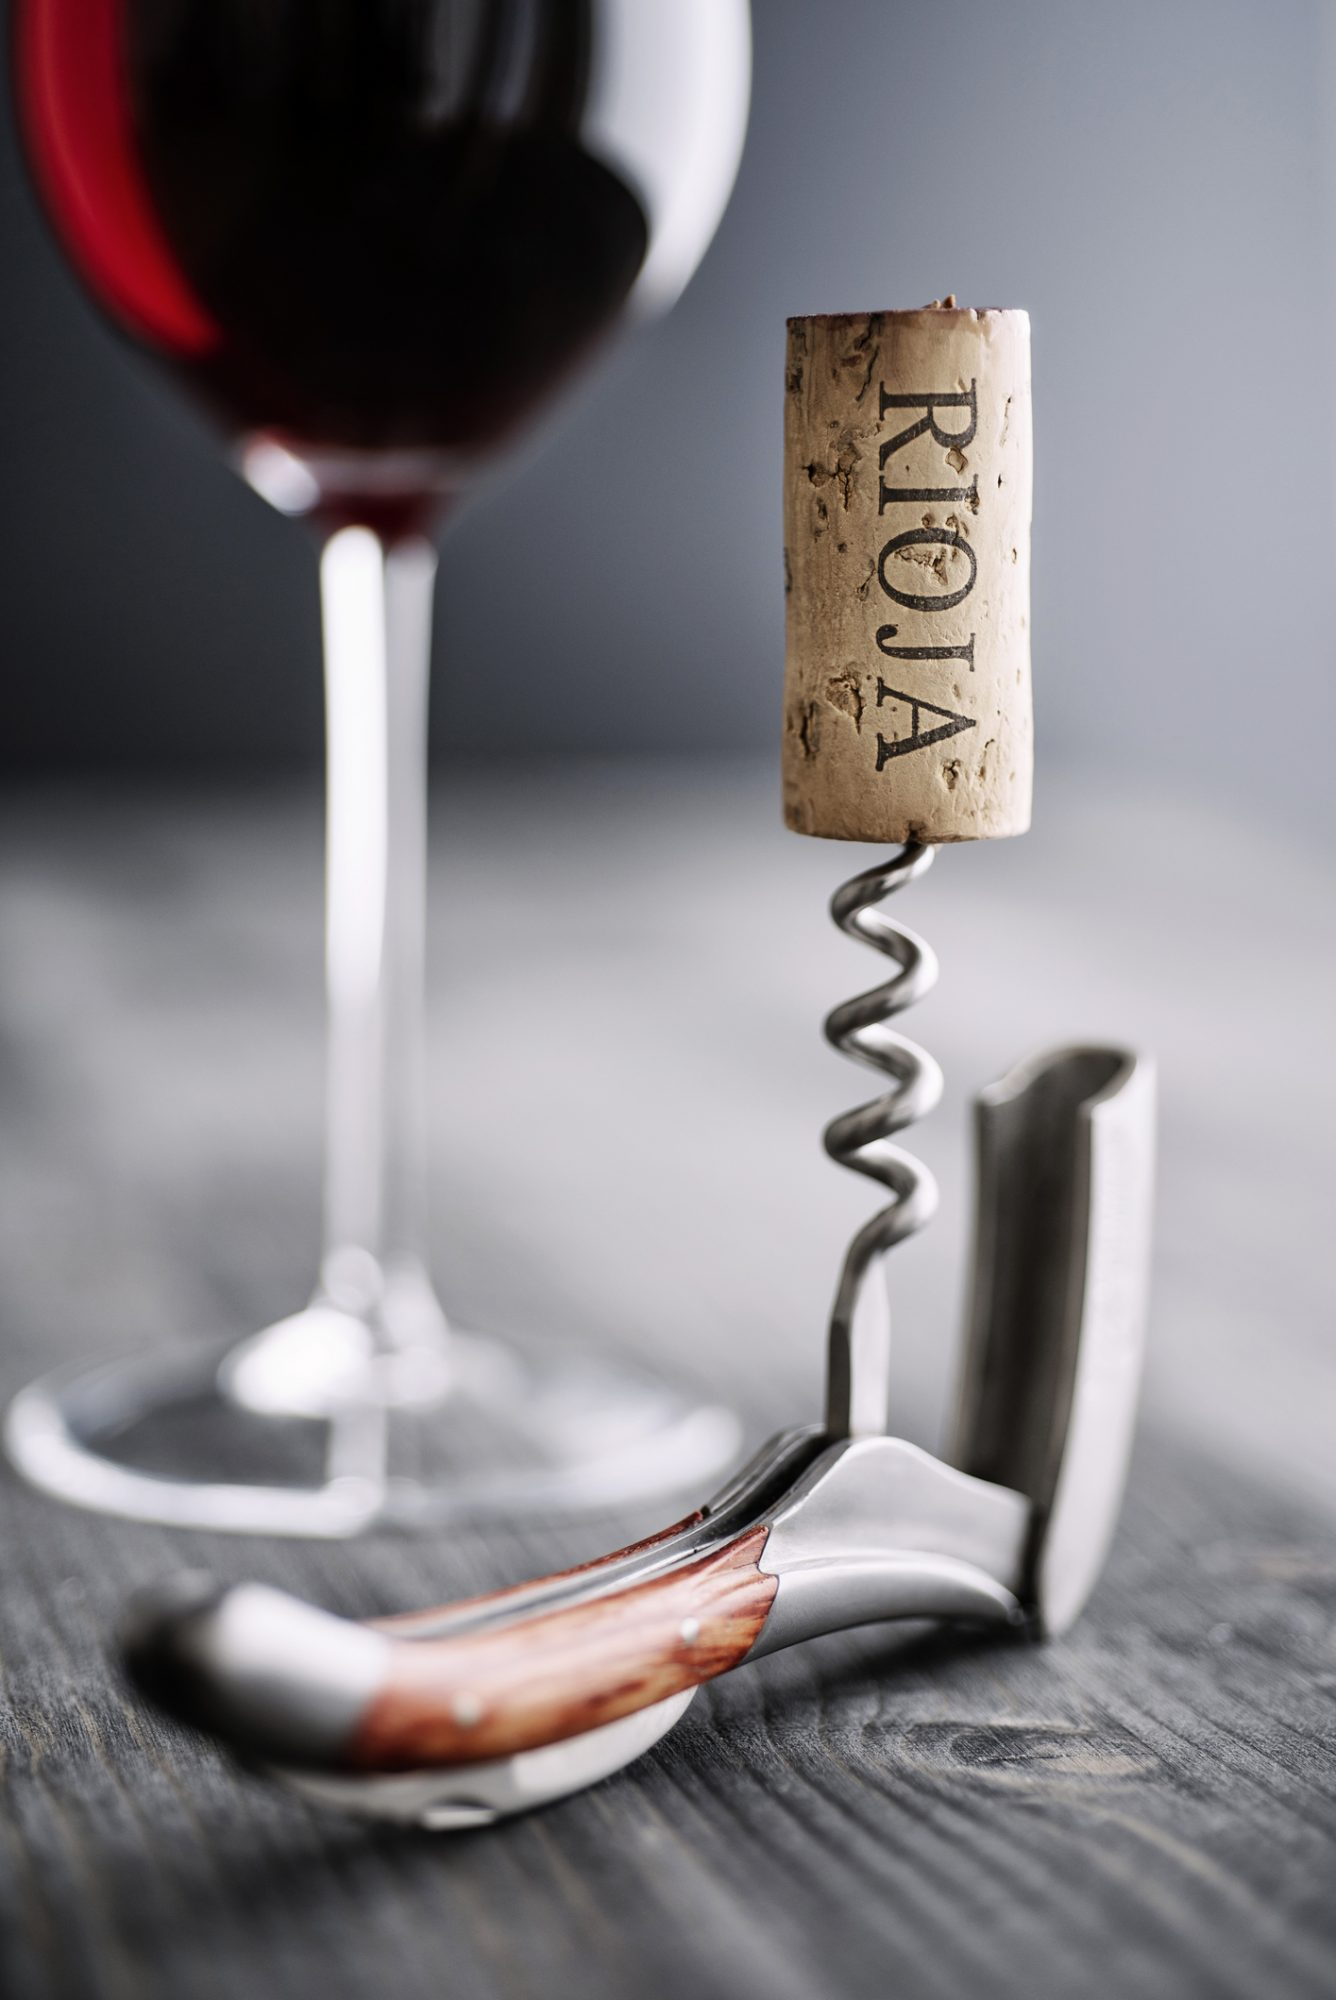 5 Rioja Wines You Should Be Drinking Now